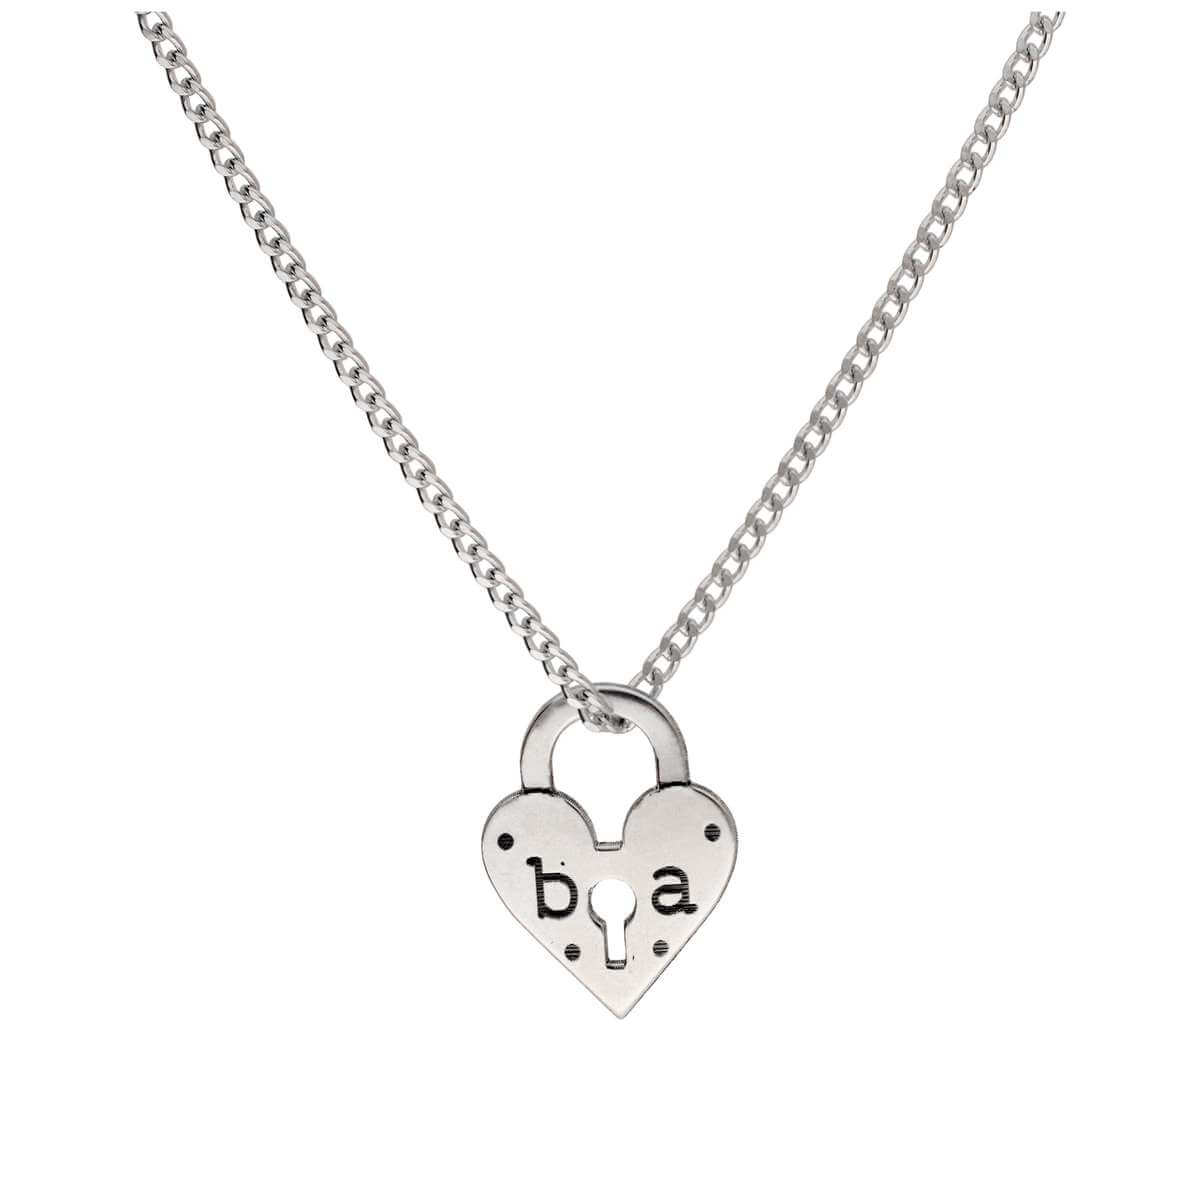 Bespoke Sterling Silver Initials Heart Padlock Necklace 16 - 28 Inches